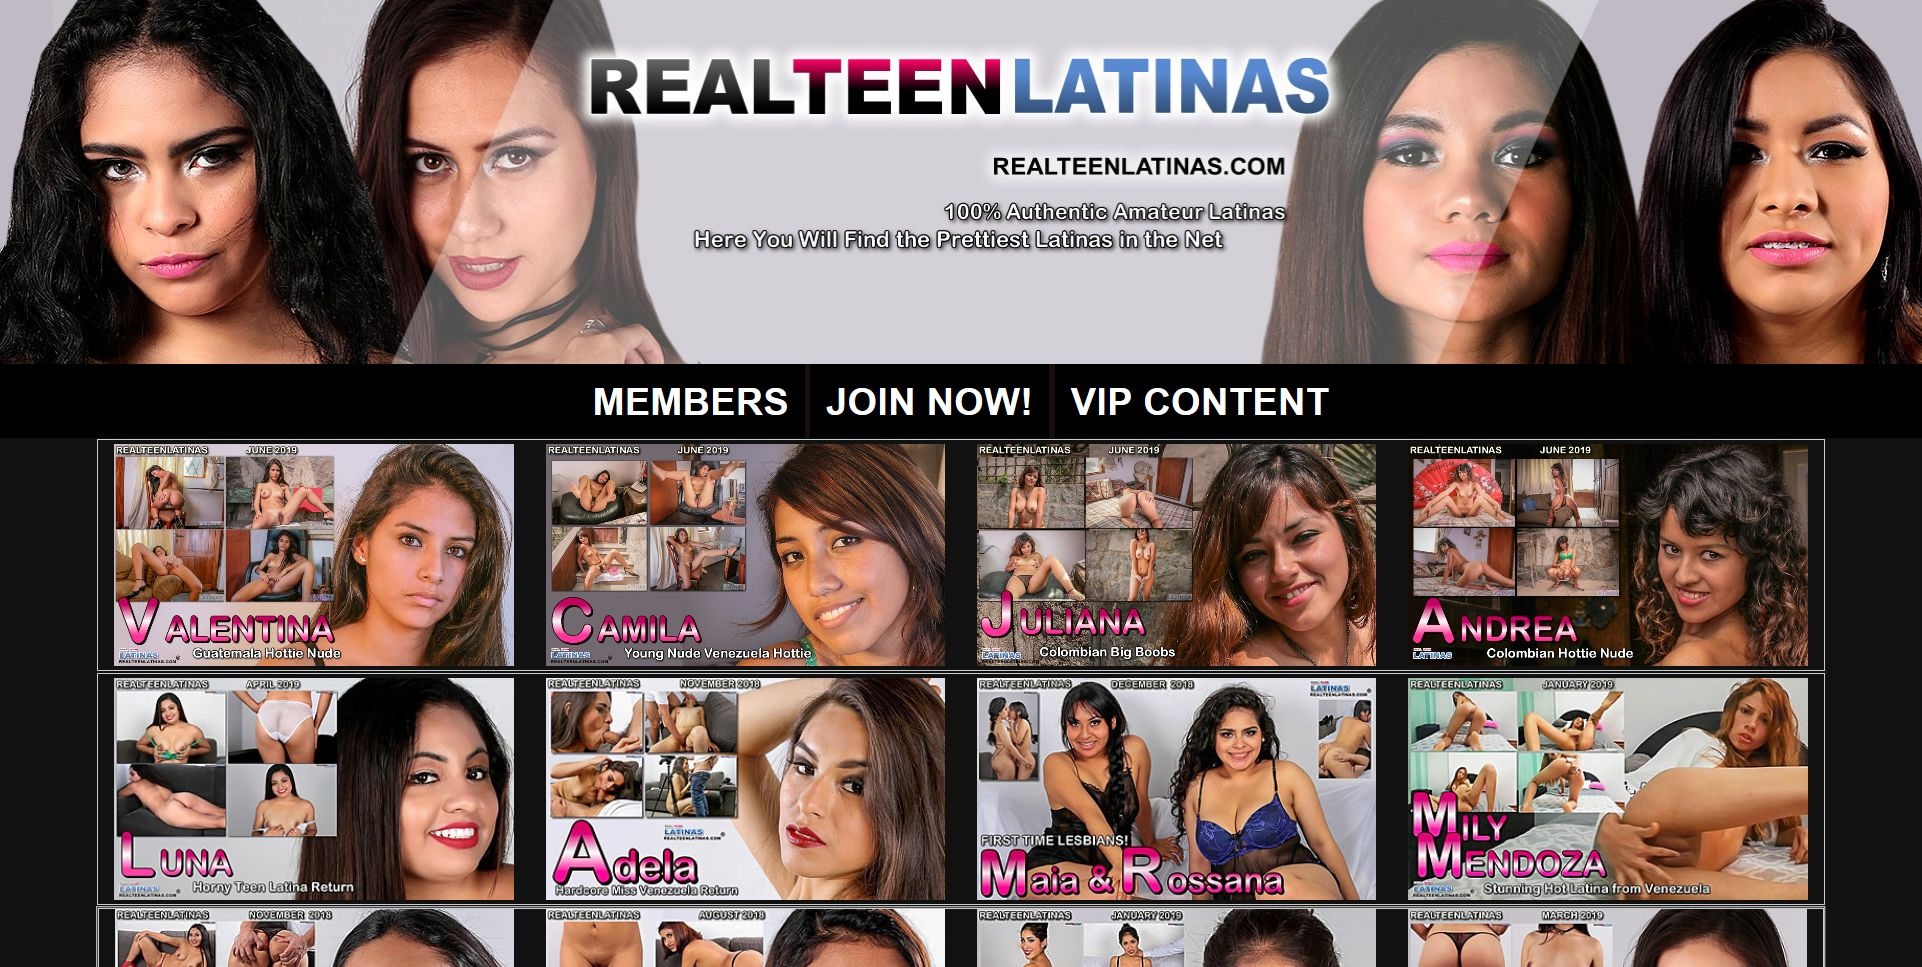 preview image password  for realteenlatinas.com